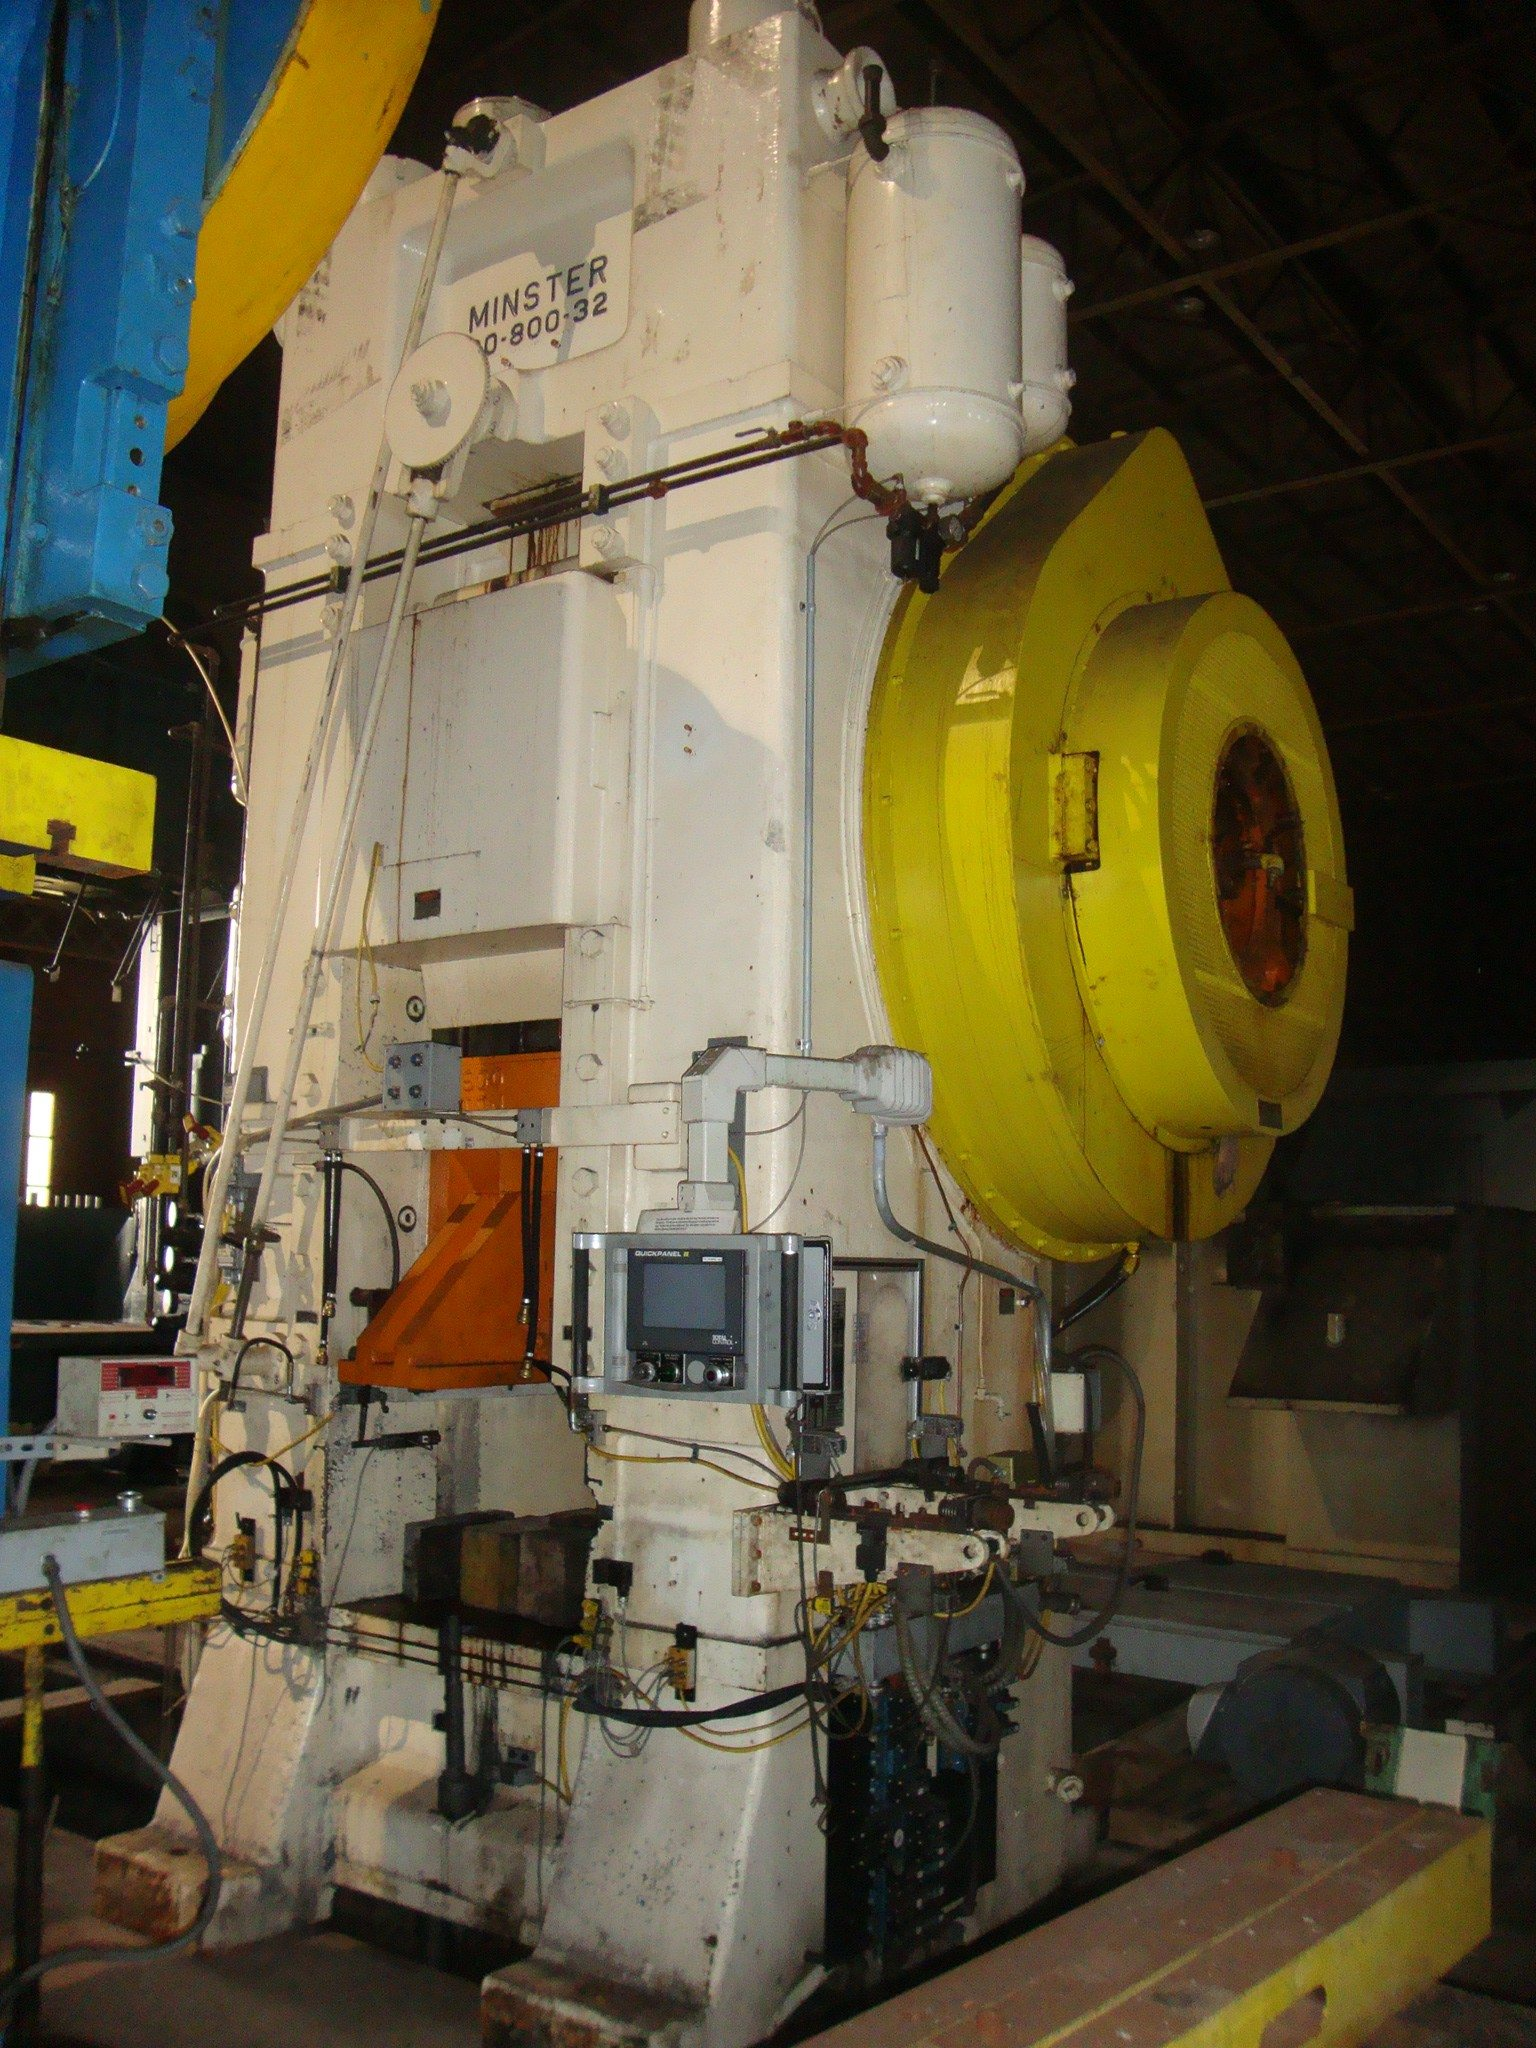 800 Ton Minster Press - Knuckle Joint Metal Stamping Punch Press For